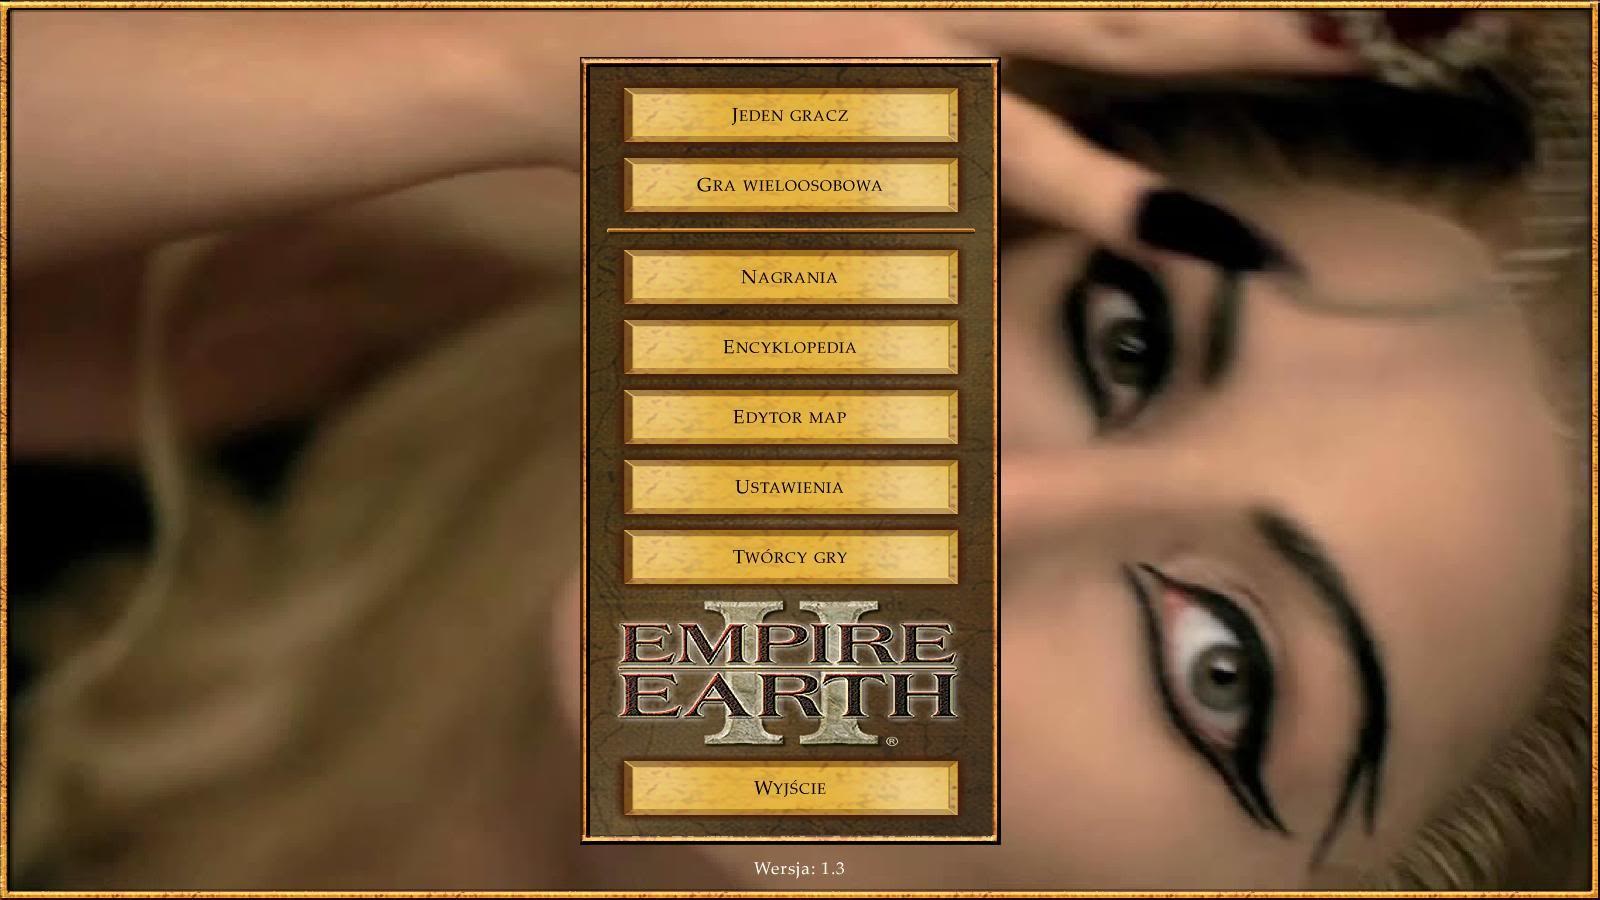 Empire Earth II - JUDAS (Lady GaGa) Theme - First screenshots